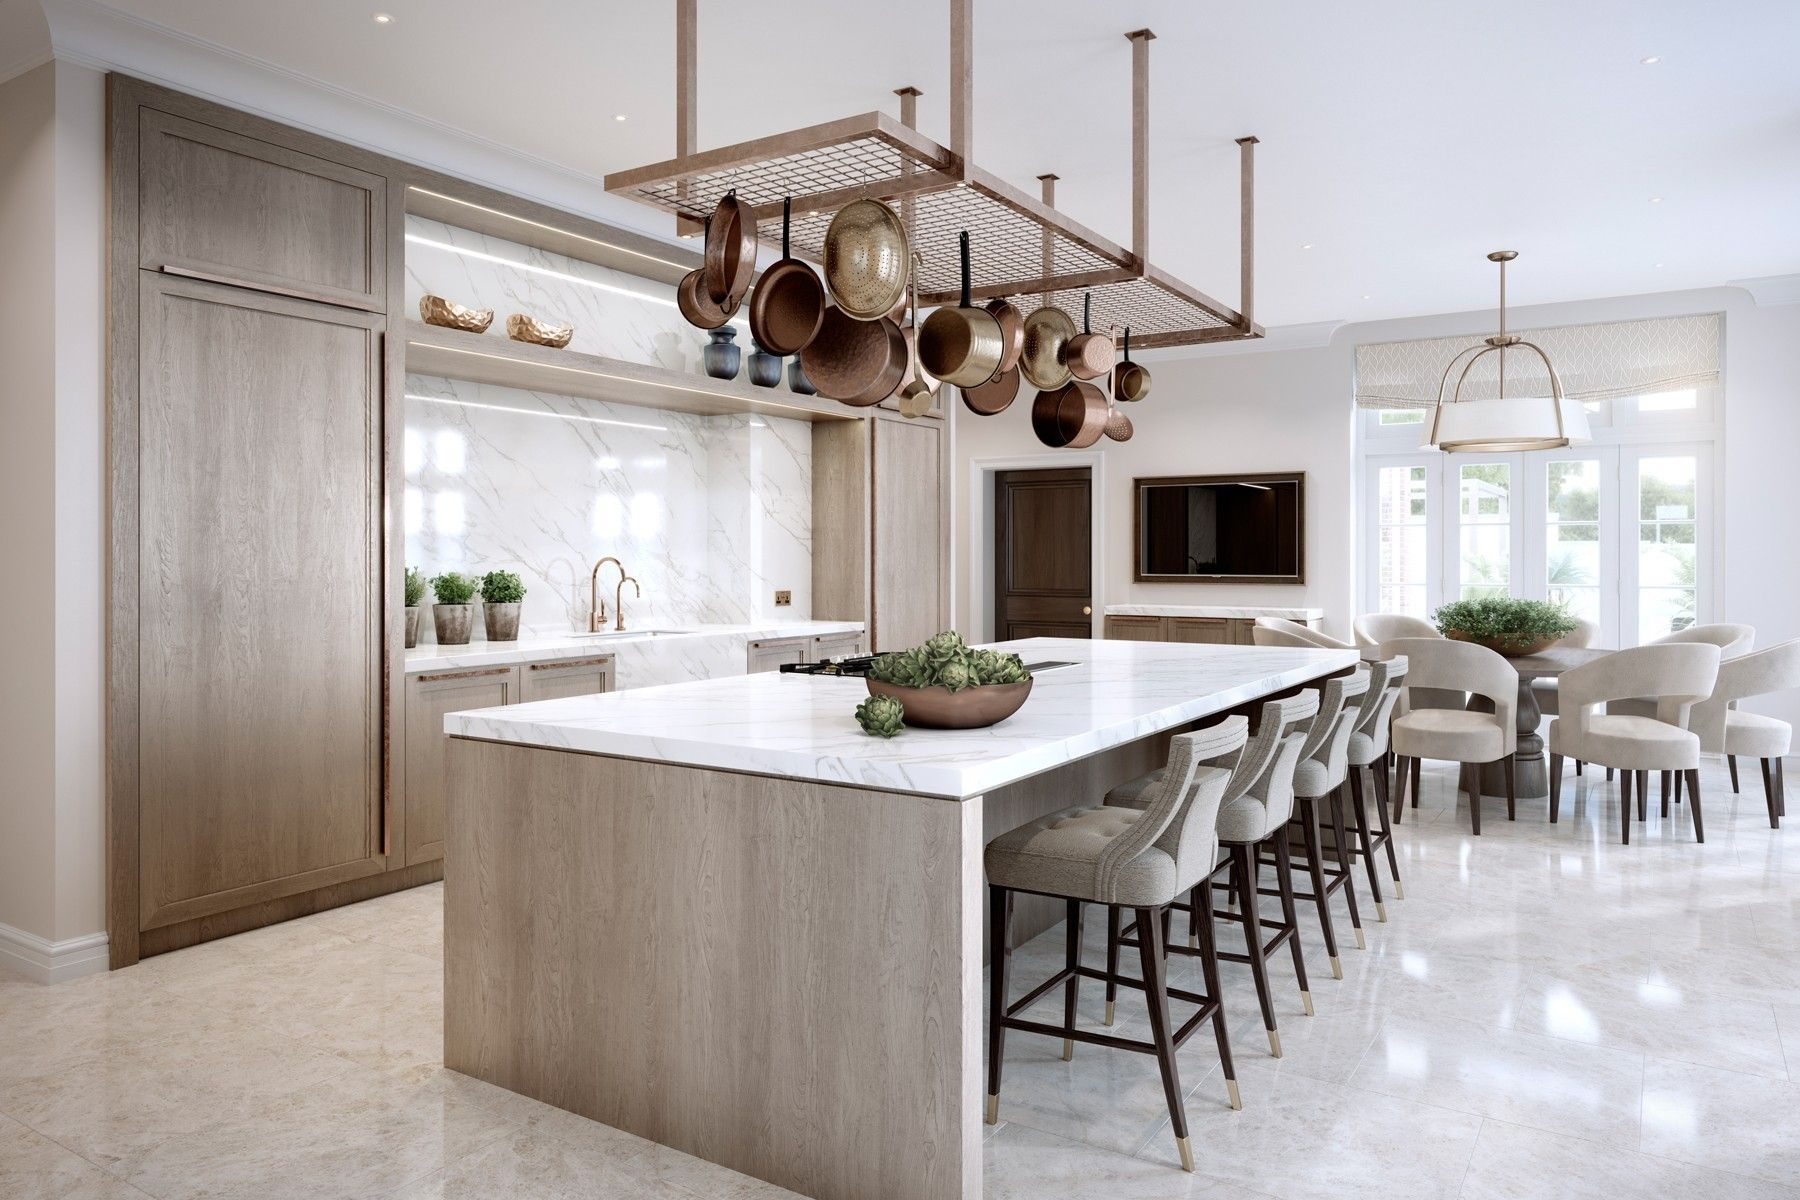 luxury kitchen interior design. Kitchen seating ideas Surrey Family Home  Luxury Interior Design Laura Hammett